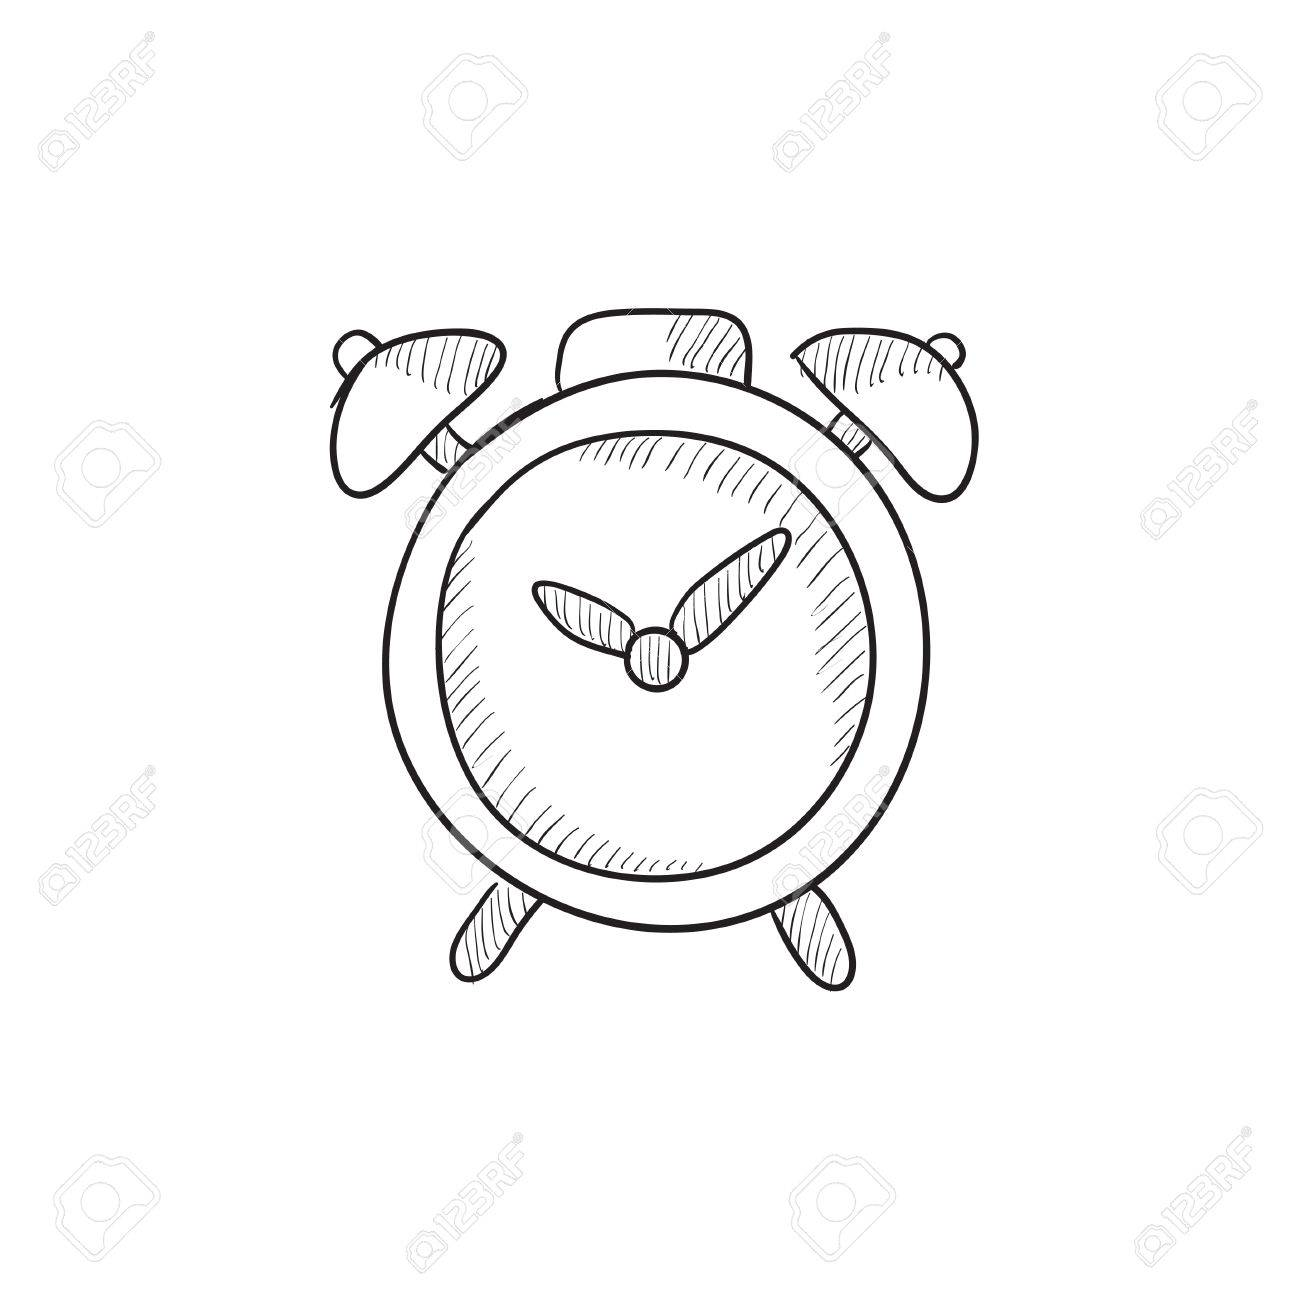 Alarm clock vector sketch icon isolated on background  Hand drawn